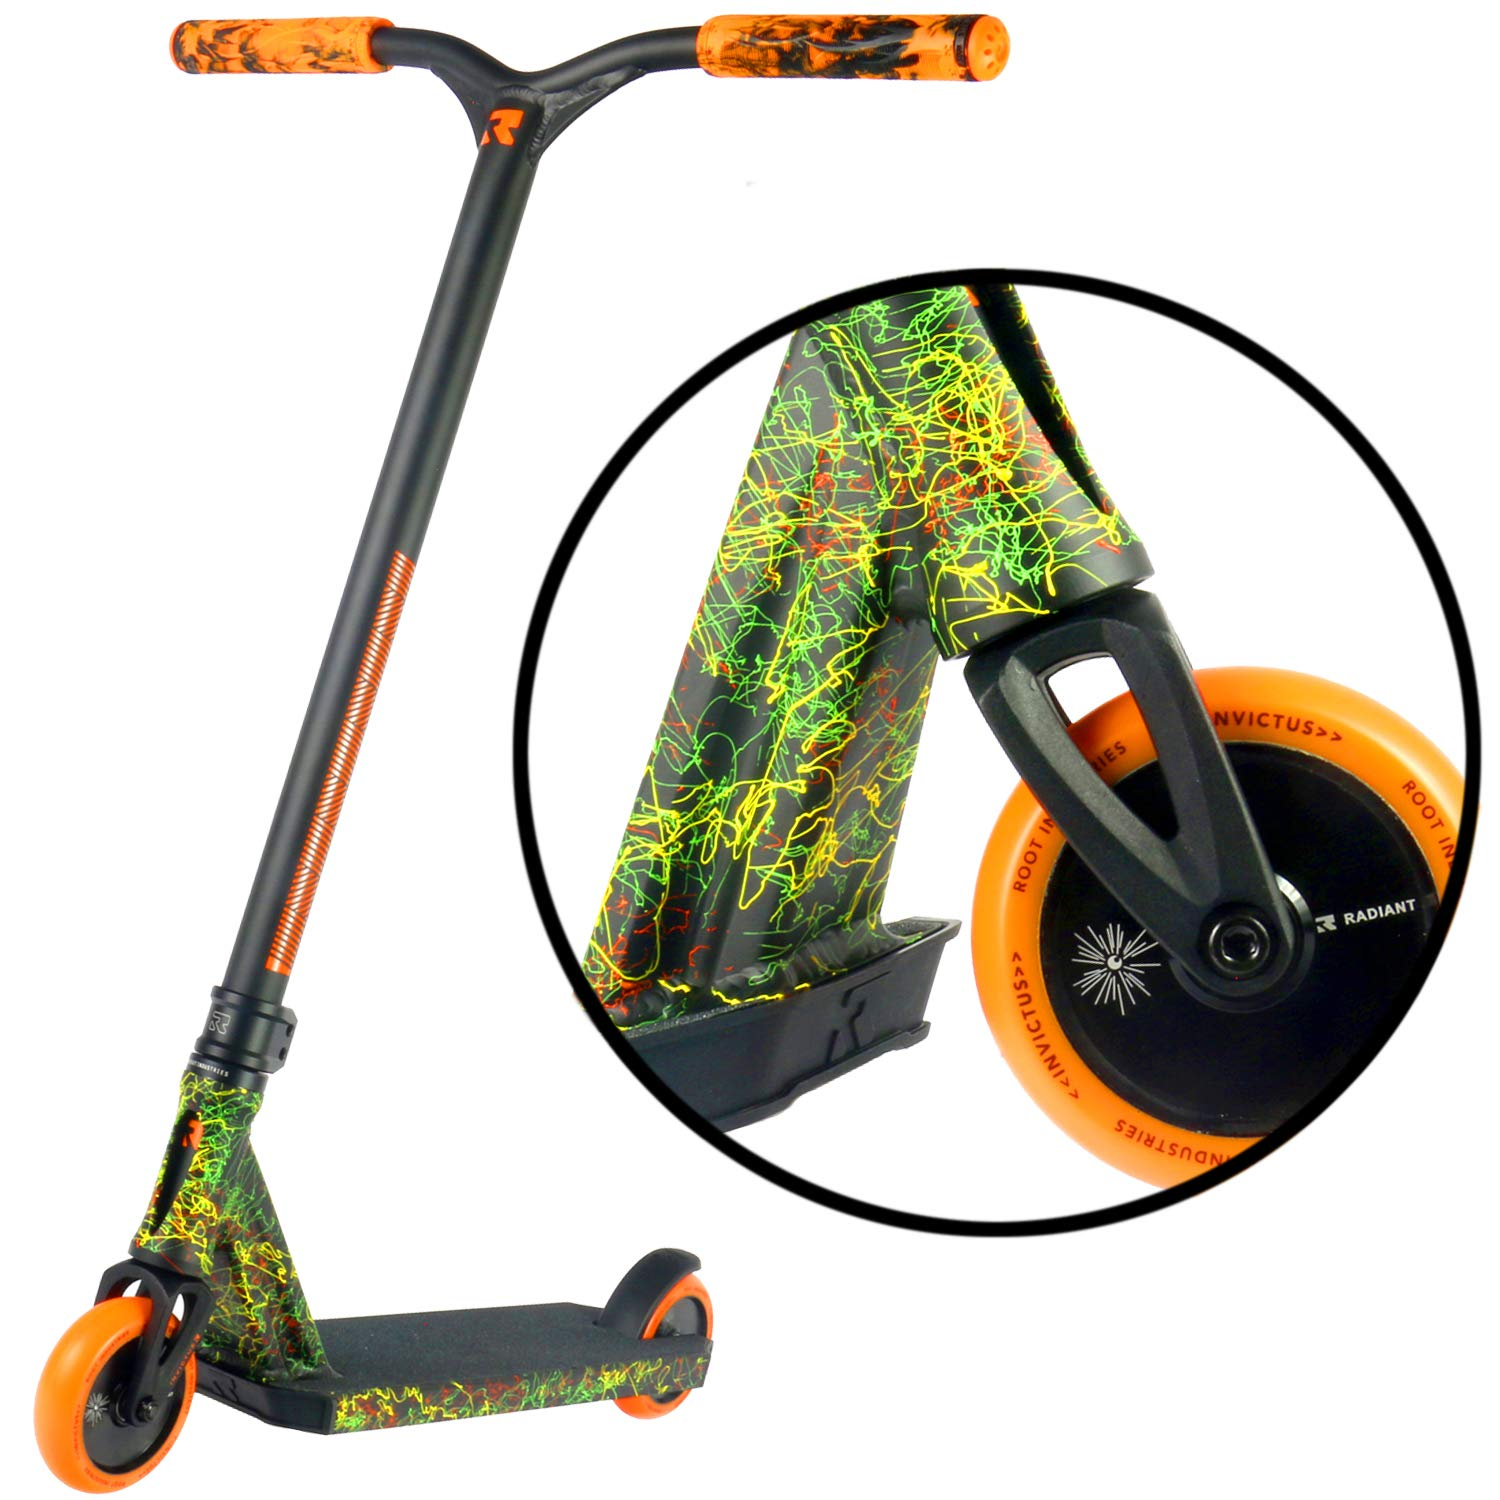 Amazon.com: Invictus Scooter completo – Patinete de ...